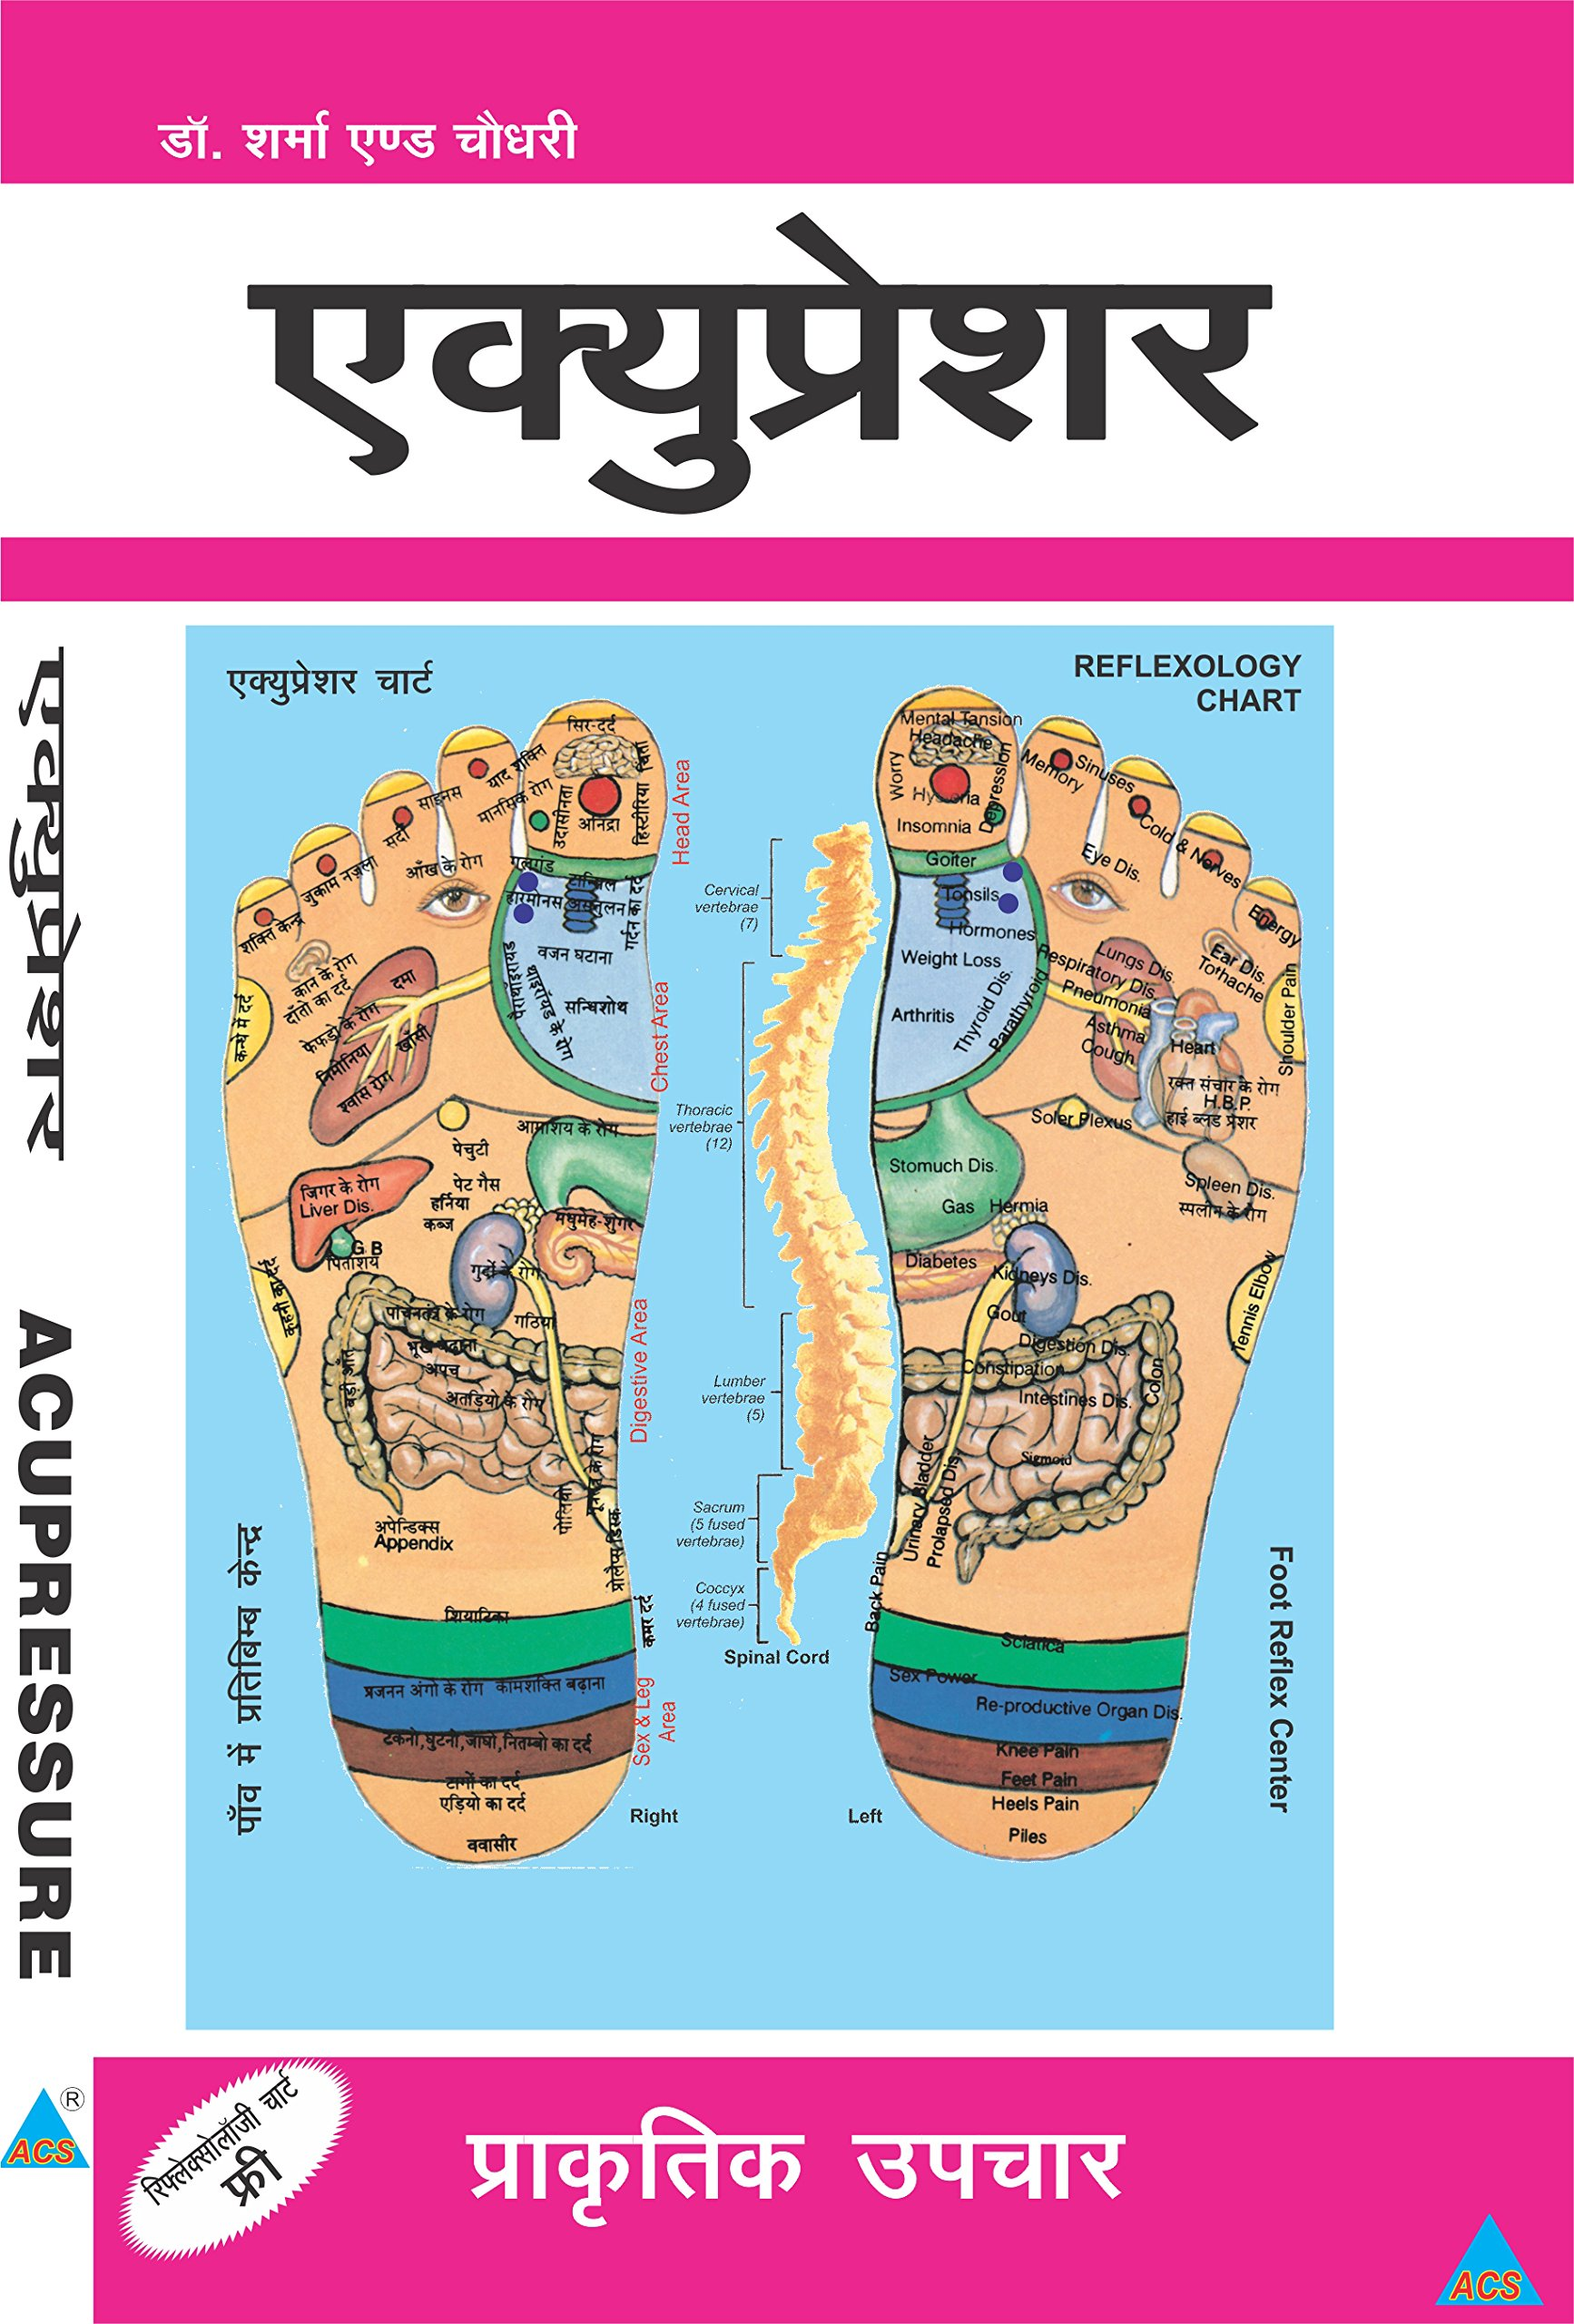 Acupressure - Dr. Sharma & Choudhary - Hindi  - 572